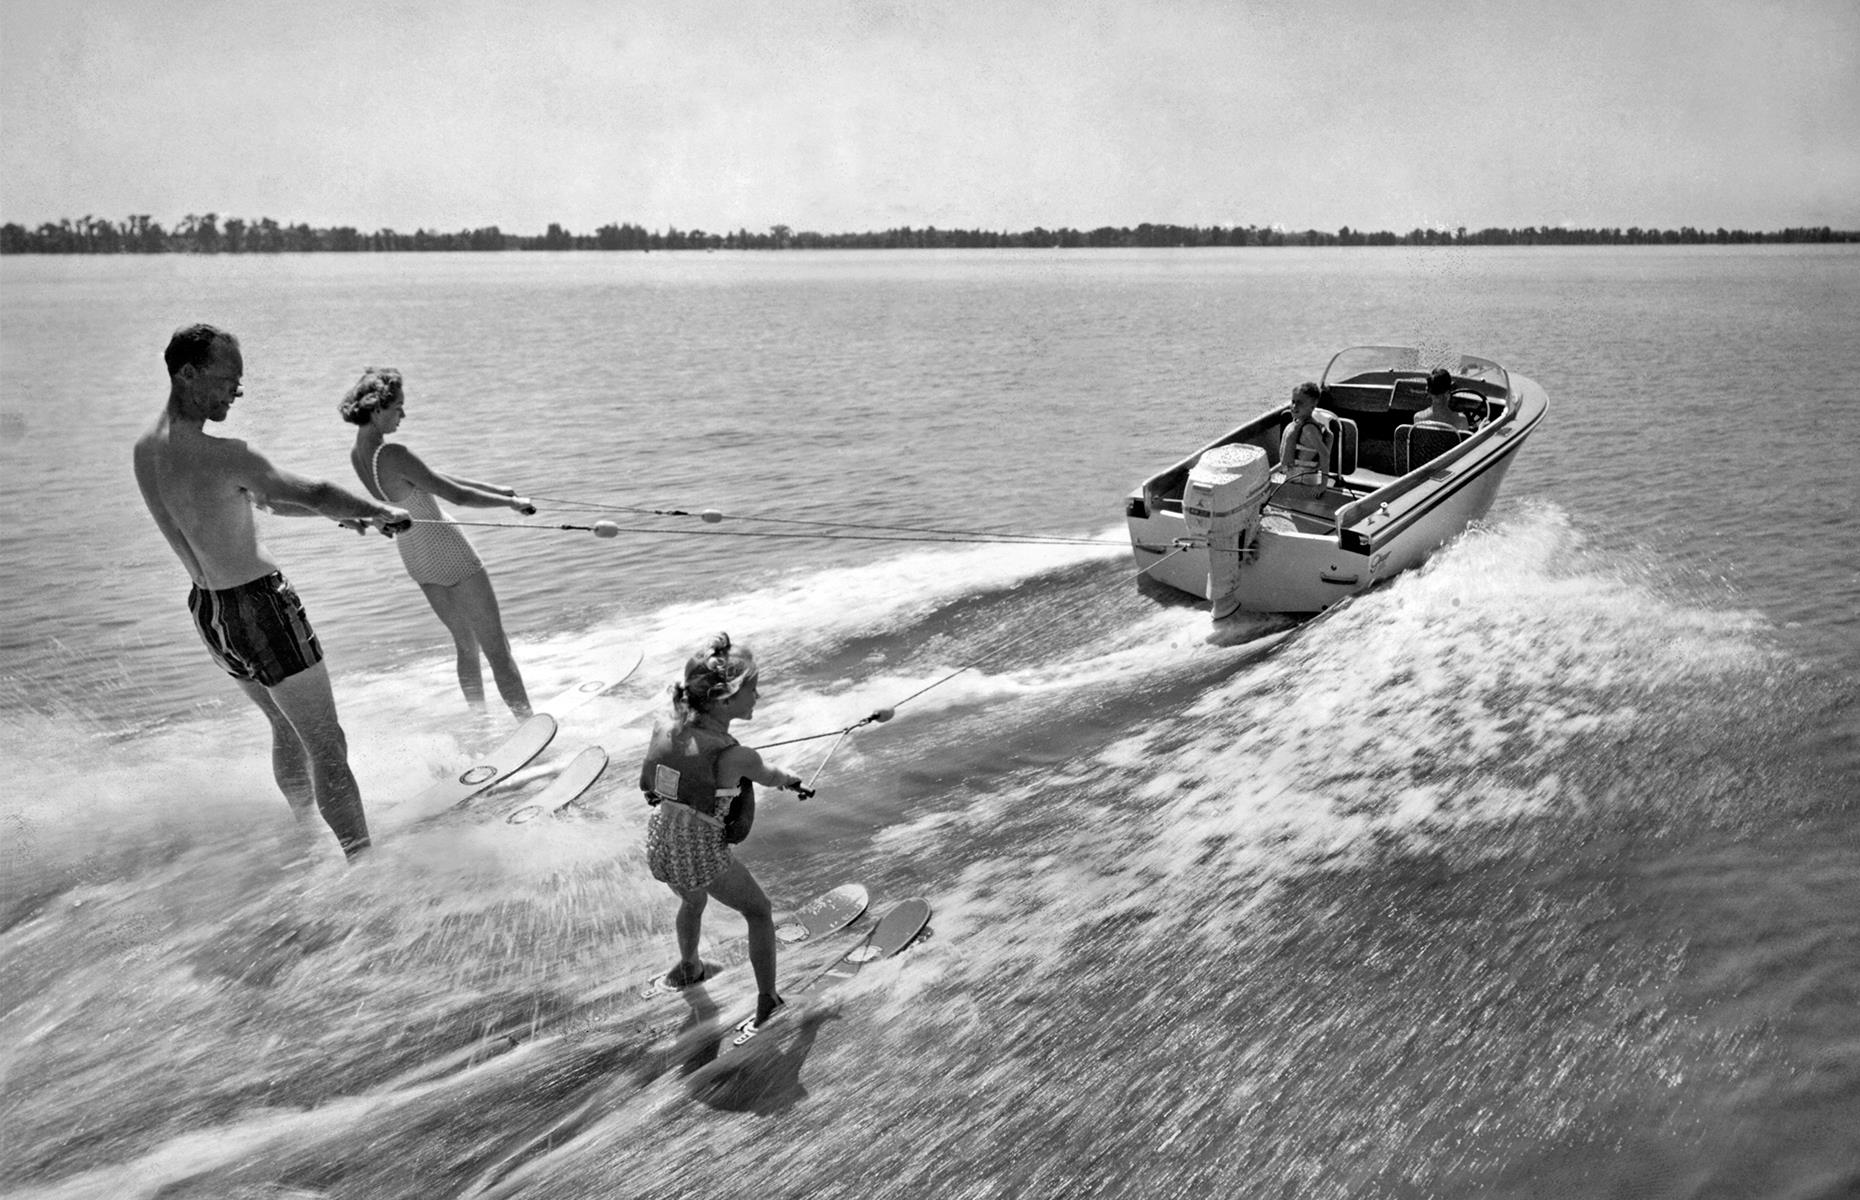 Slide 10 of 38: Tourism boomed in the Sunshine State in this post-war decade, with sun-seekers flocking here from all over America. Top destinations included Miami, St Petersburg and St Augustine. This water-skiing family was snapped in Winter Haven's Cypress Gardens, often tipped as Florida's first theme park. Now see Florida's incredible transformation from swampland to vacation paradise.